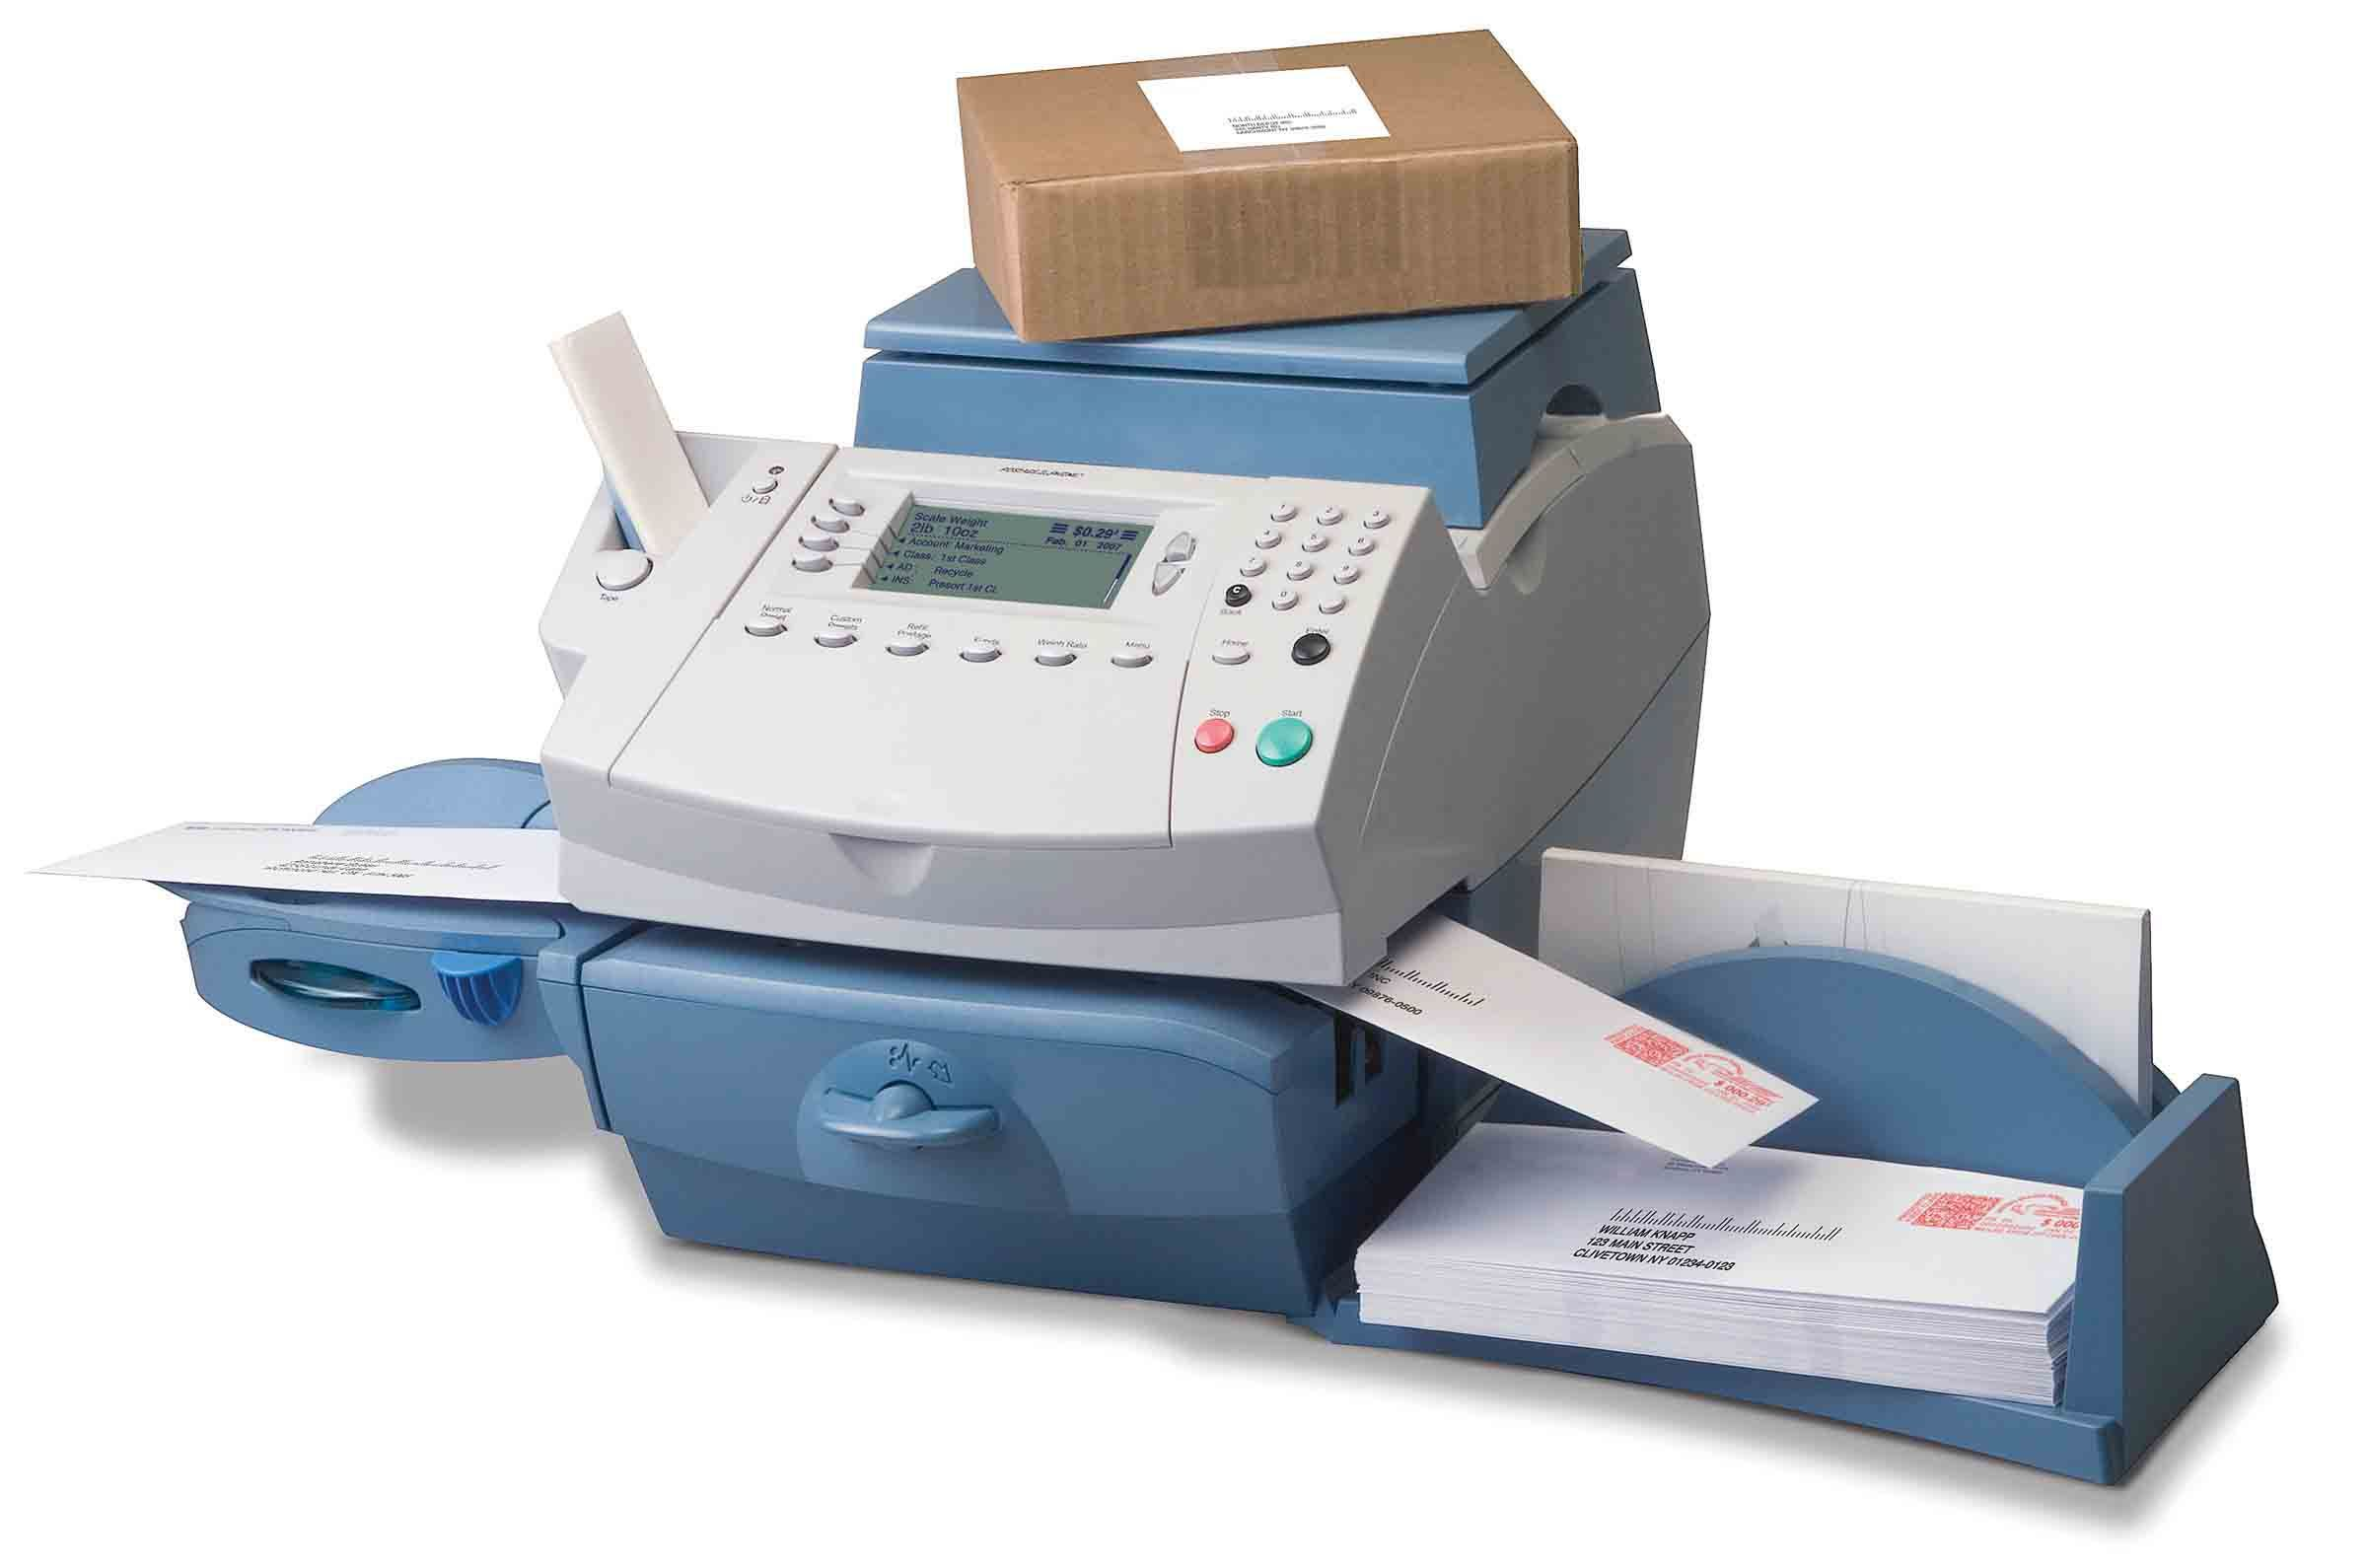 Digital Postage Meters Mailing Systems Typac